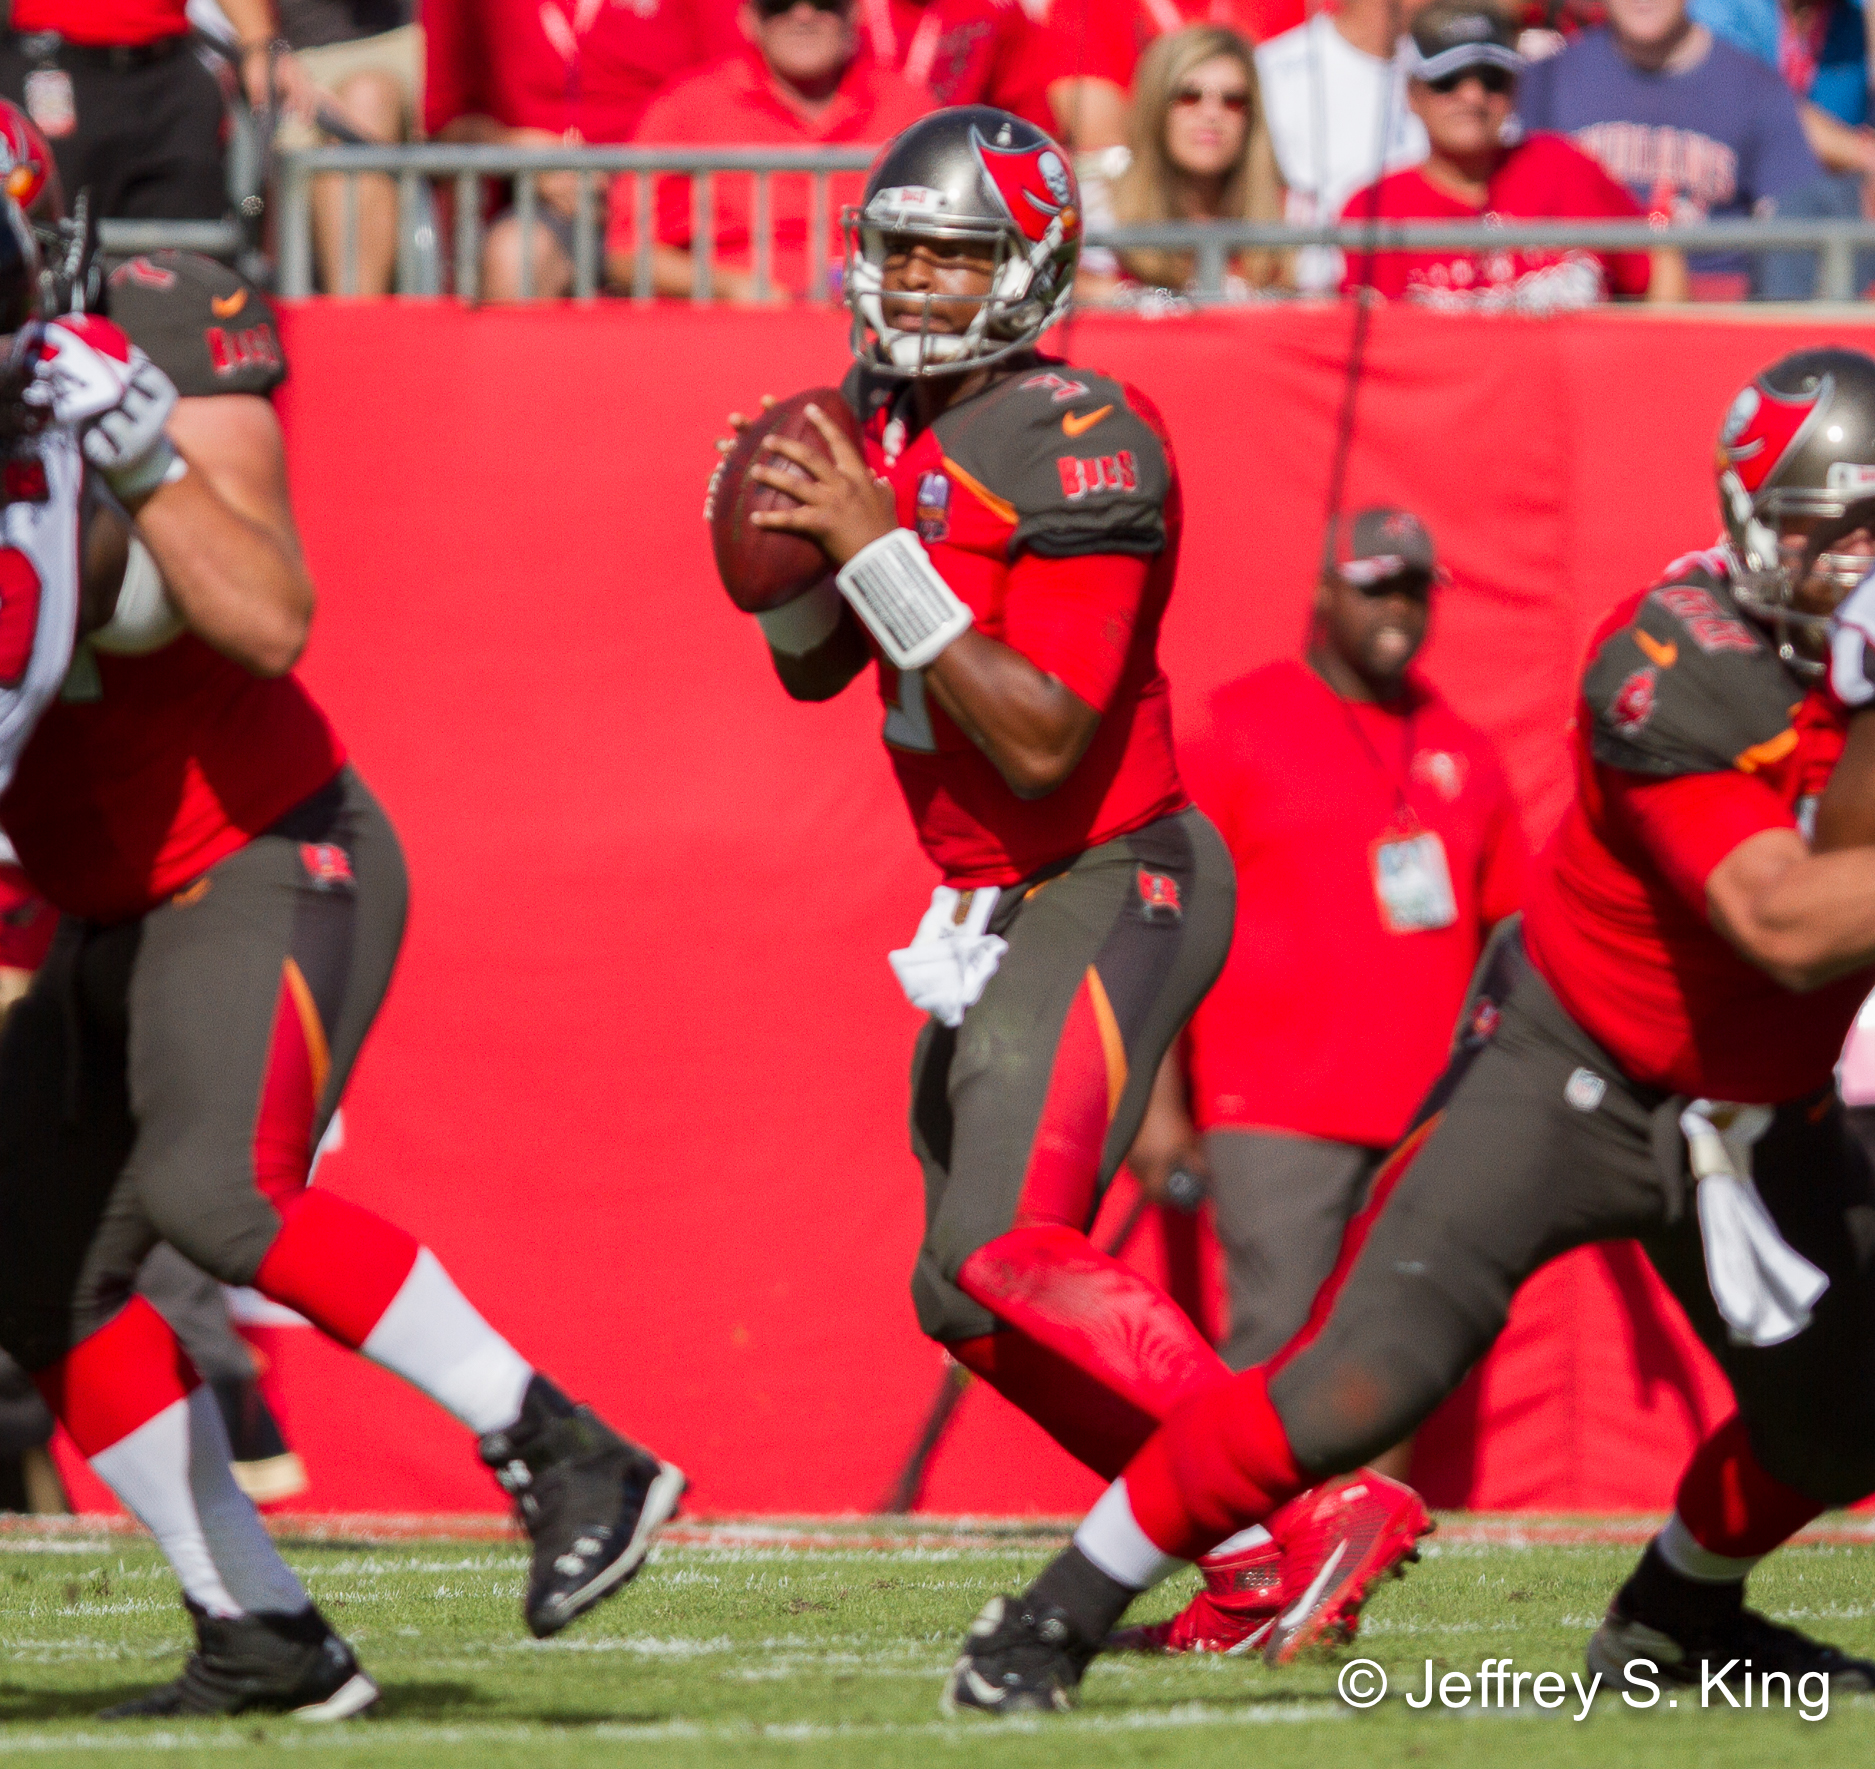 Winston hopes to emulate the growth of other NFL quarterbacks in Year Two.